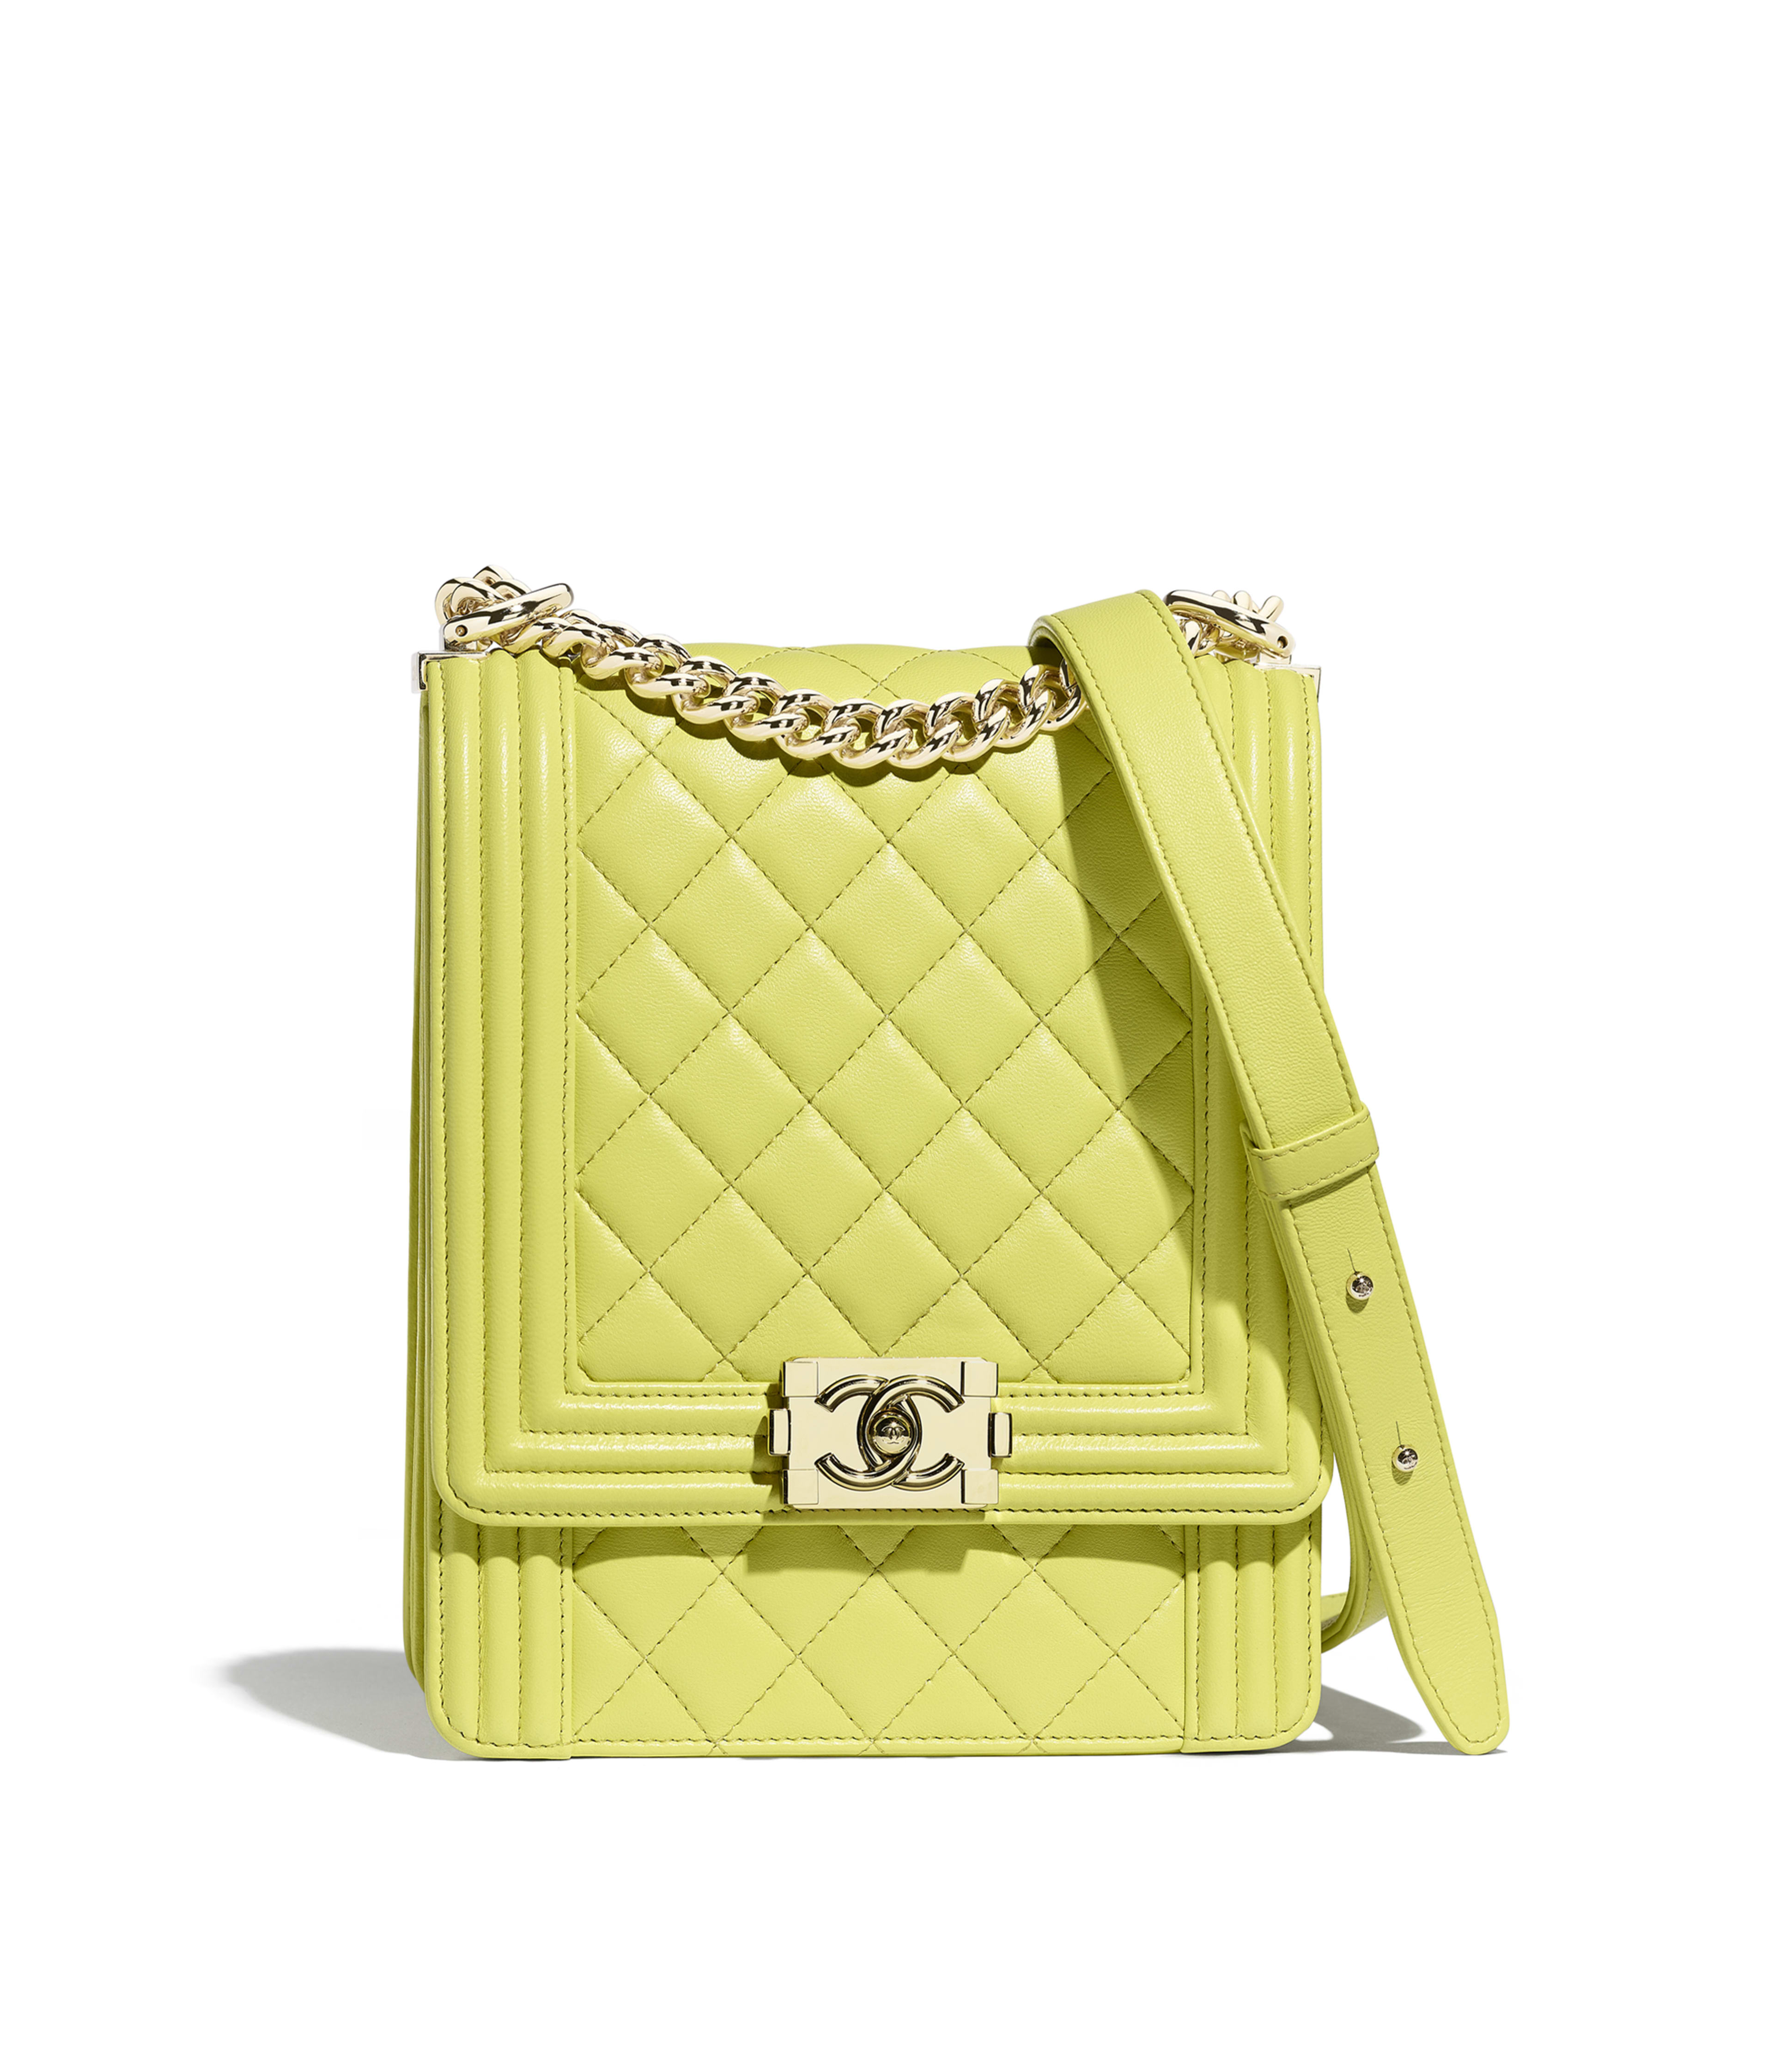 BOY CHANEL Handbag Calfskin   Gold-Tone Metal, Light Green Ref.  AS0130Y25569N0410 c502b813265